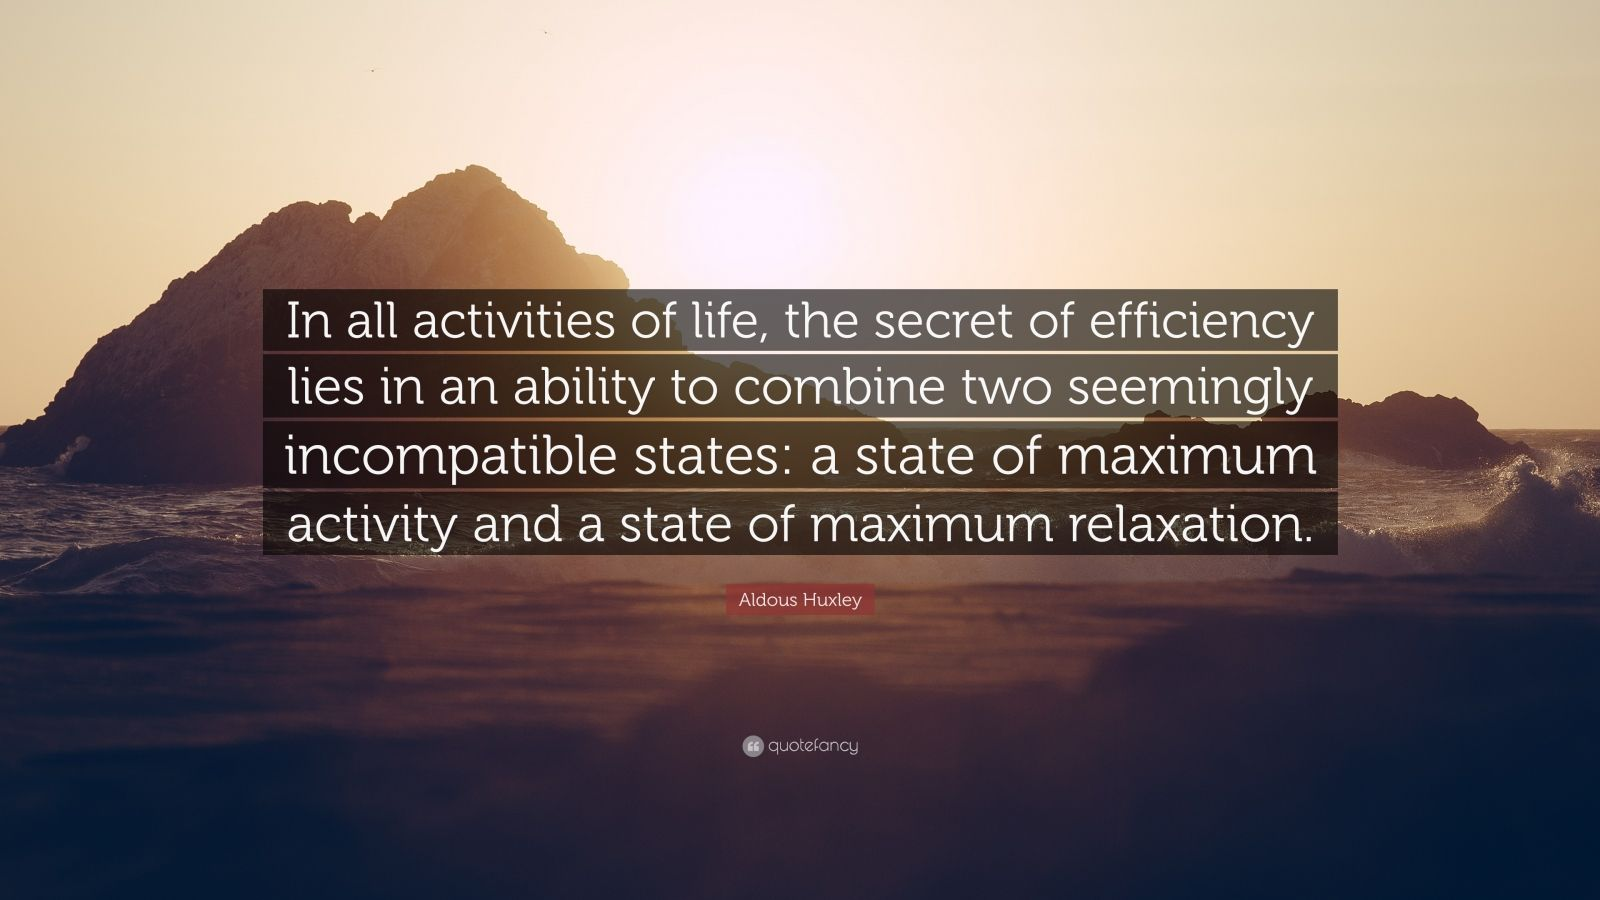 "Aldous Huxley Quote: ""In all activities of life, the secret of efficiency lies in an ability to combine two seemingly incompatible states: a state of maximum activity and a state of maximum relaxation."""